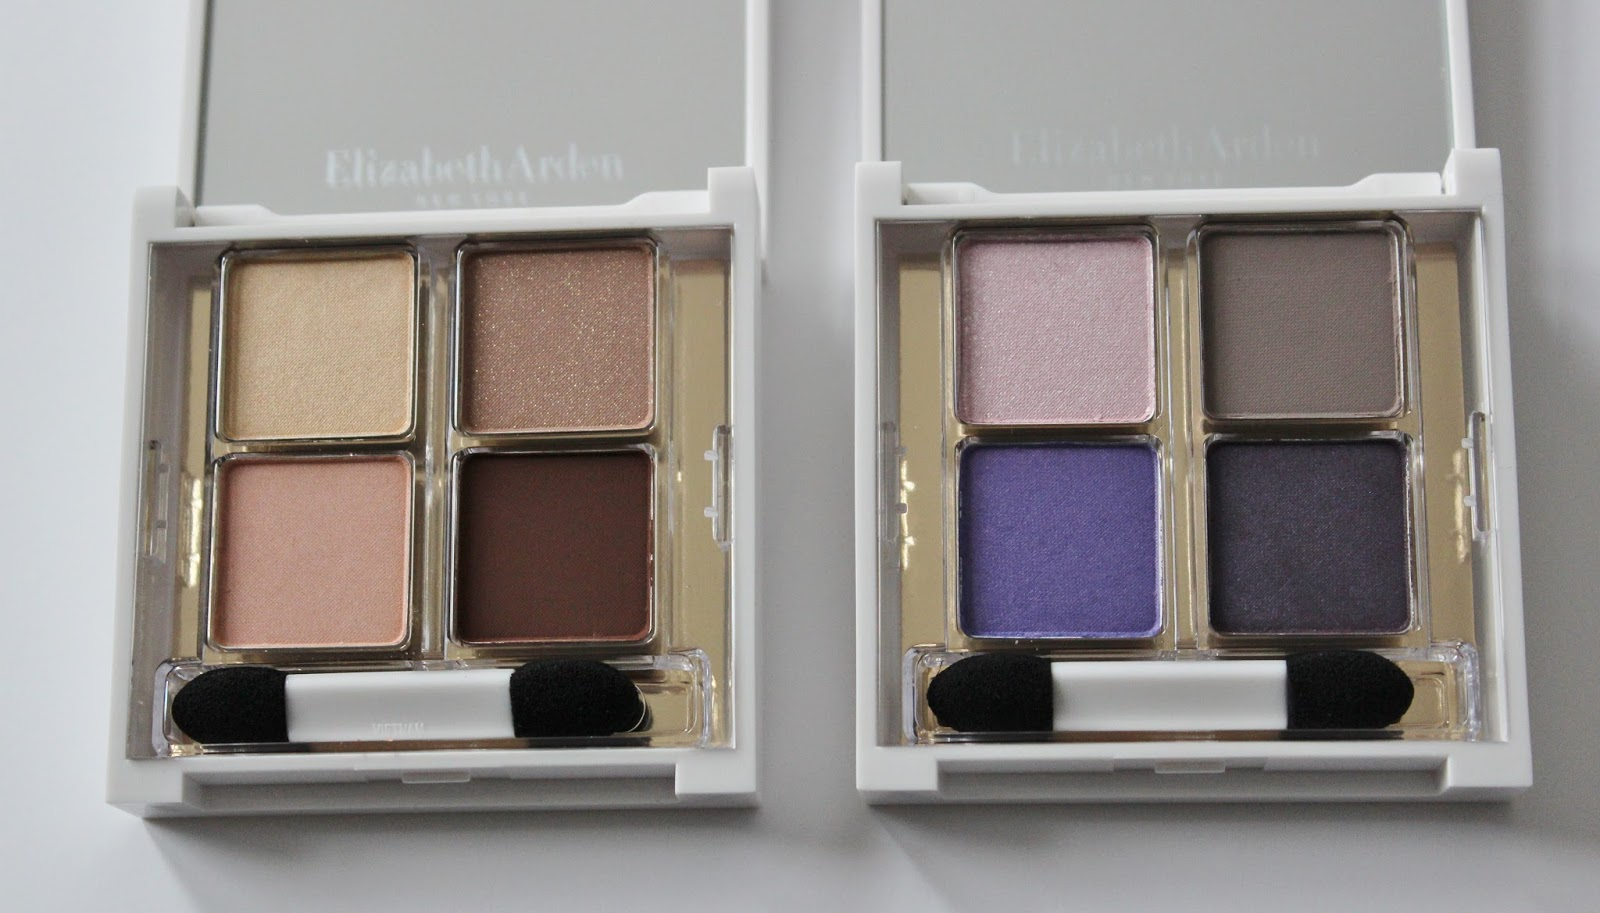 Elizabeth Arden untold aw14 makeup launches eyeshadow quads